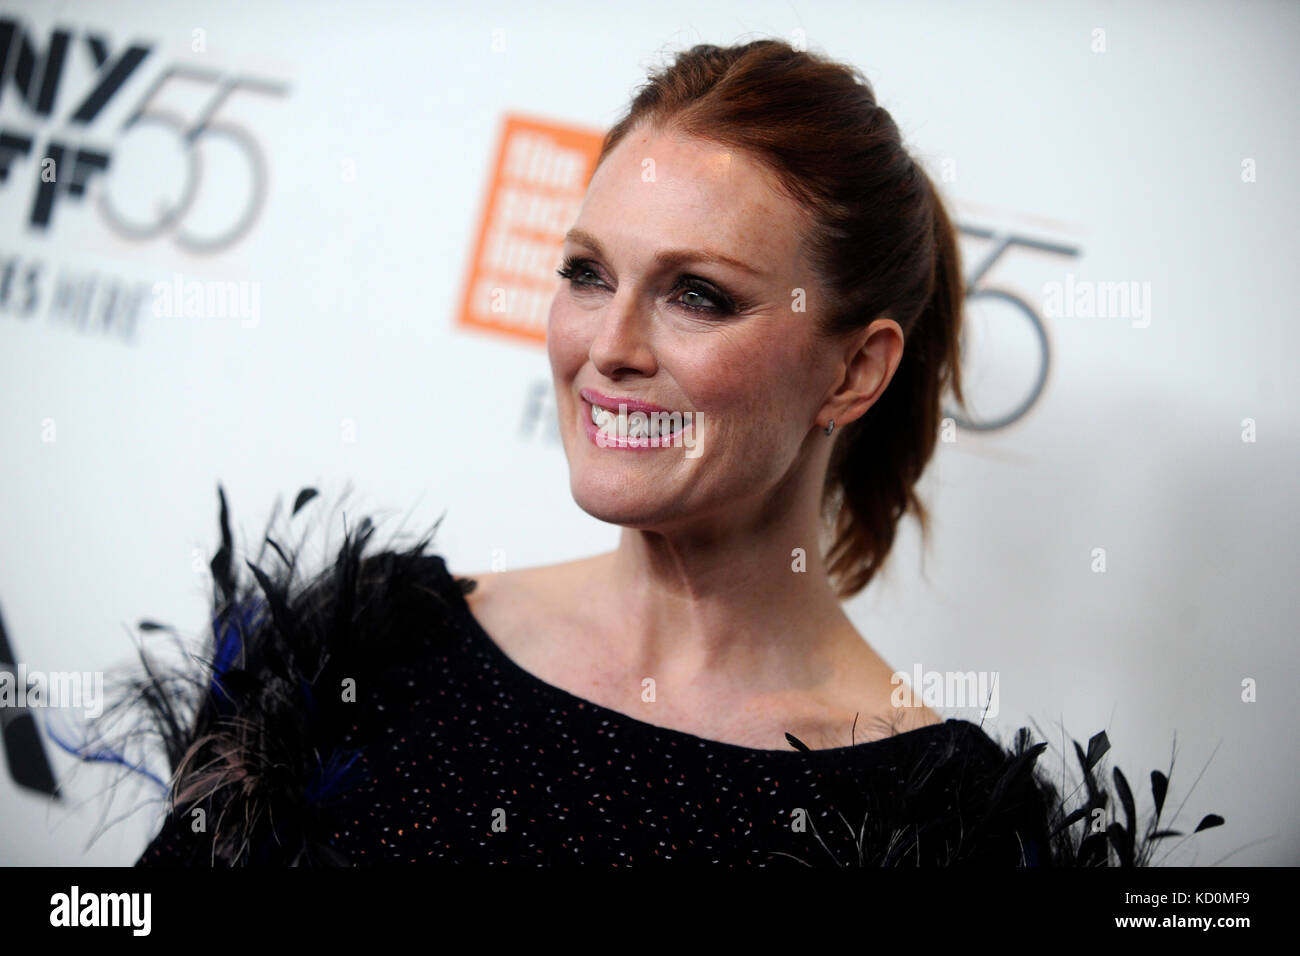 Julianne Moore besucht die 'überrascht' Premiere während der 55Th New York Film Festival in der Alice Tully Hall Stockfoto